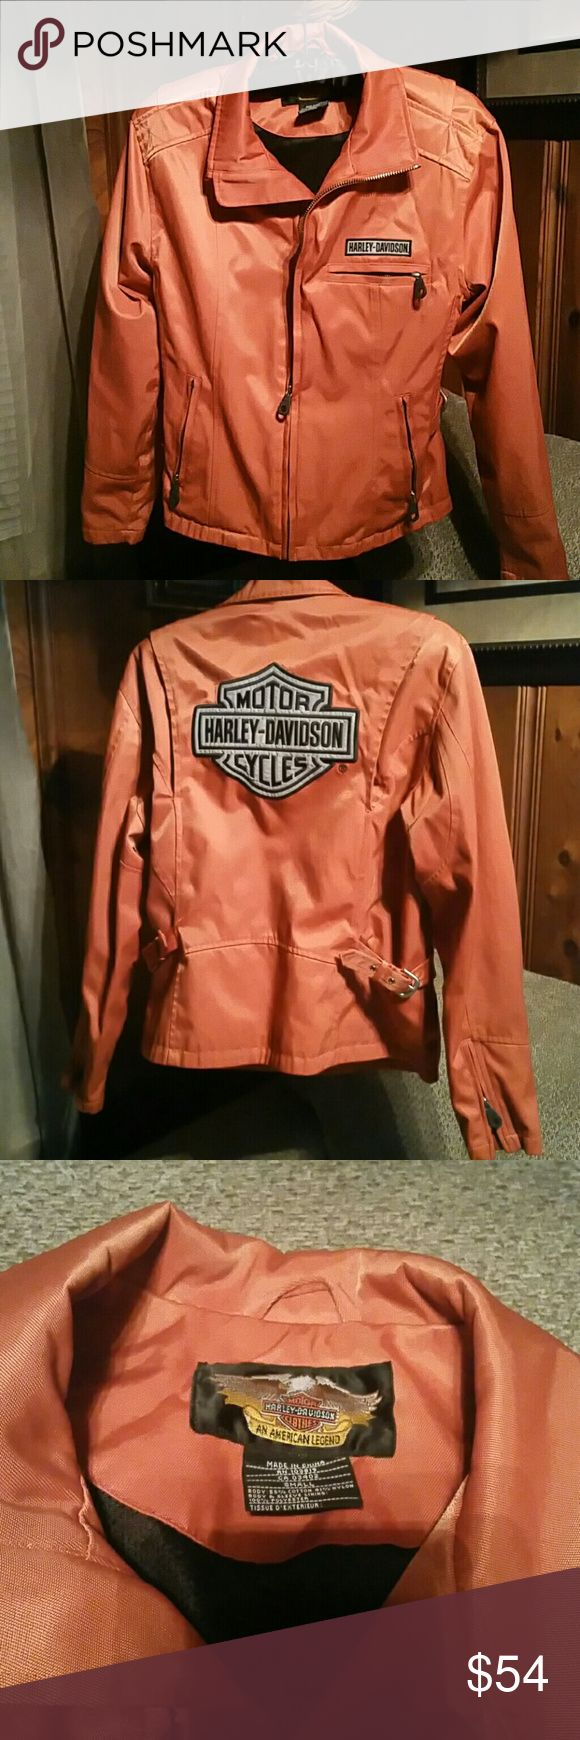 SALE TILL TUESDAY - ORANGE HARLEY DAVIDSON JACKET Lined with reflective decals.  Great condition. Harley-Davidson Jackets & Coats